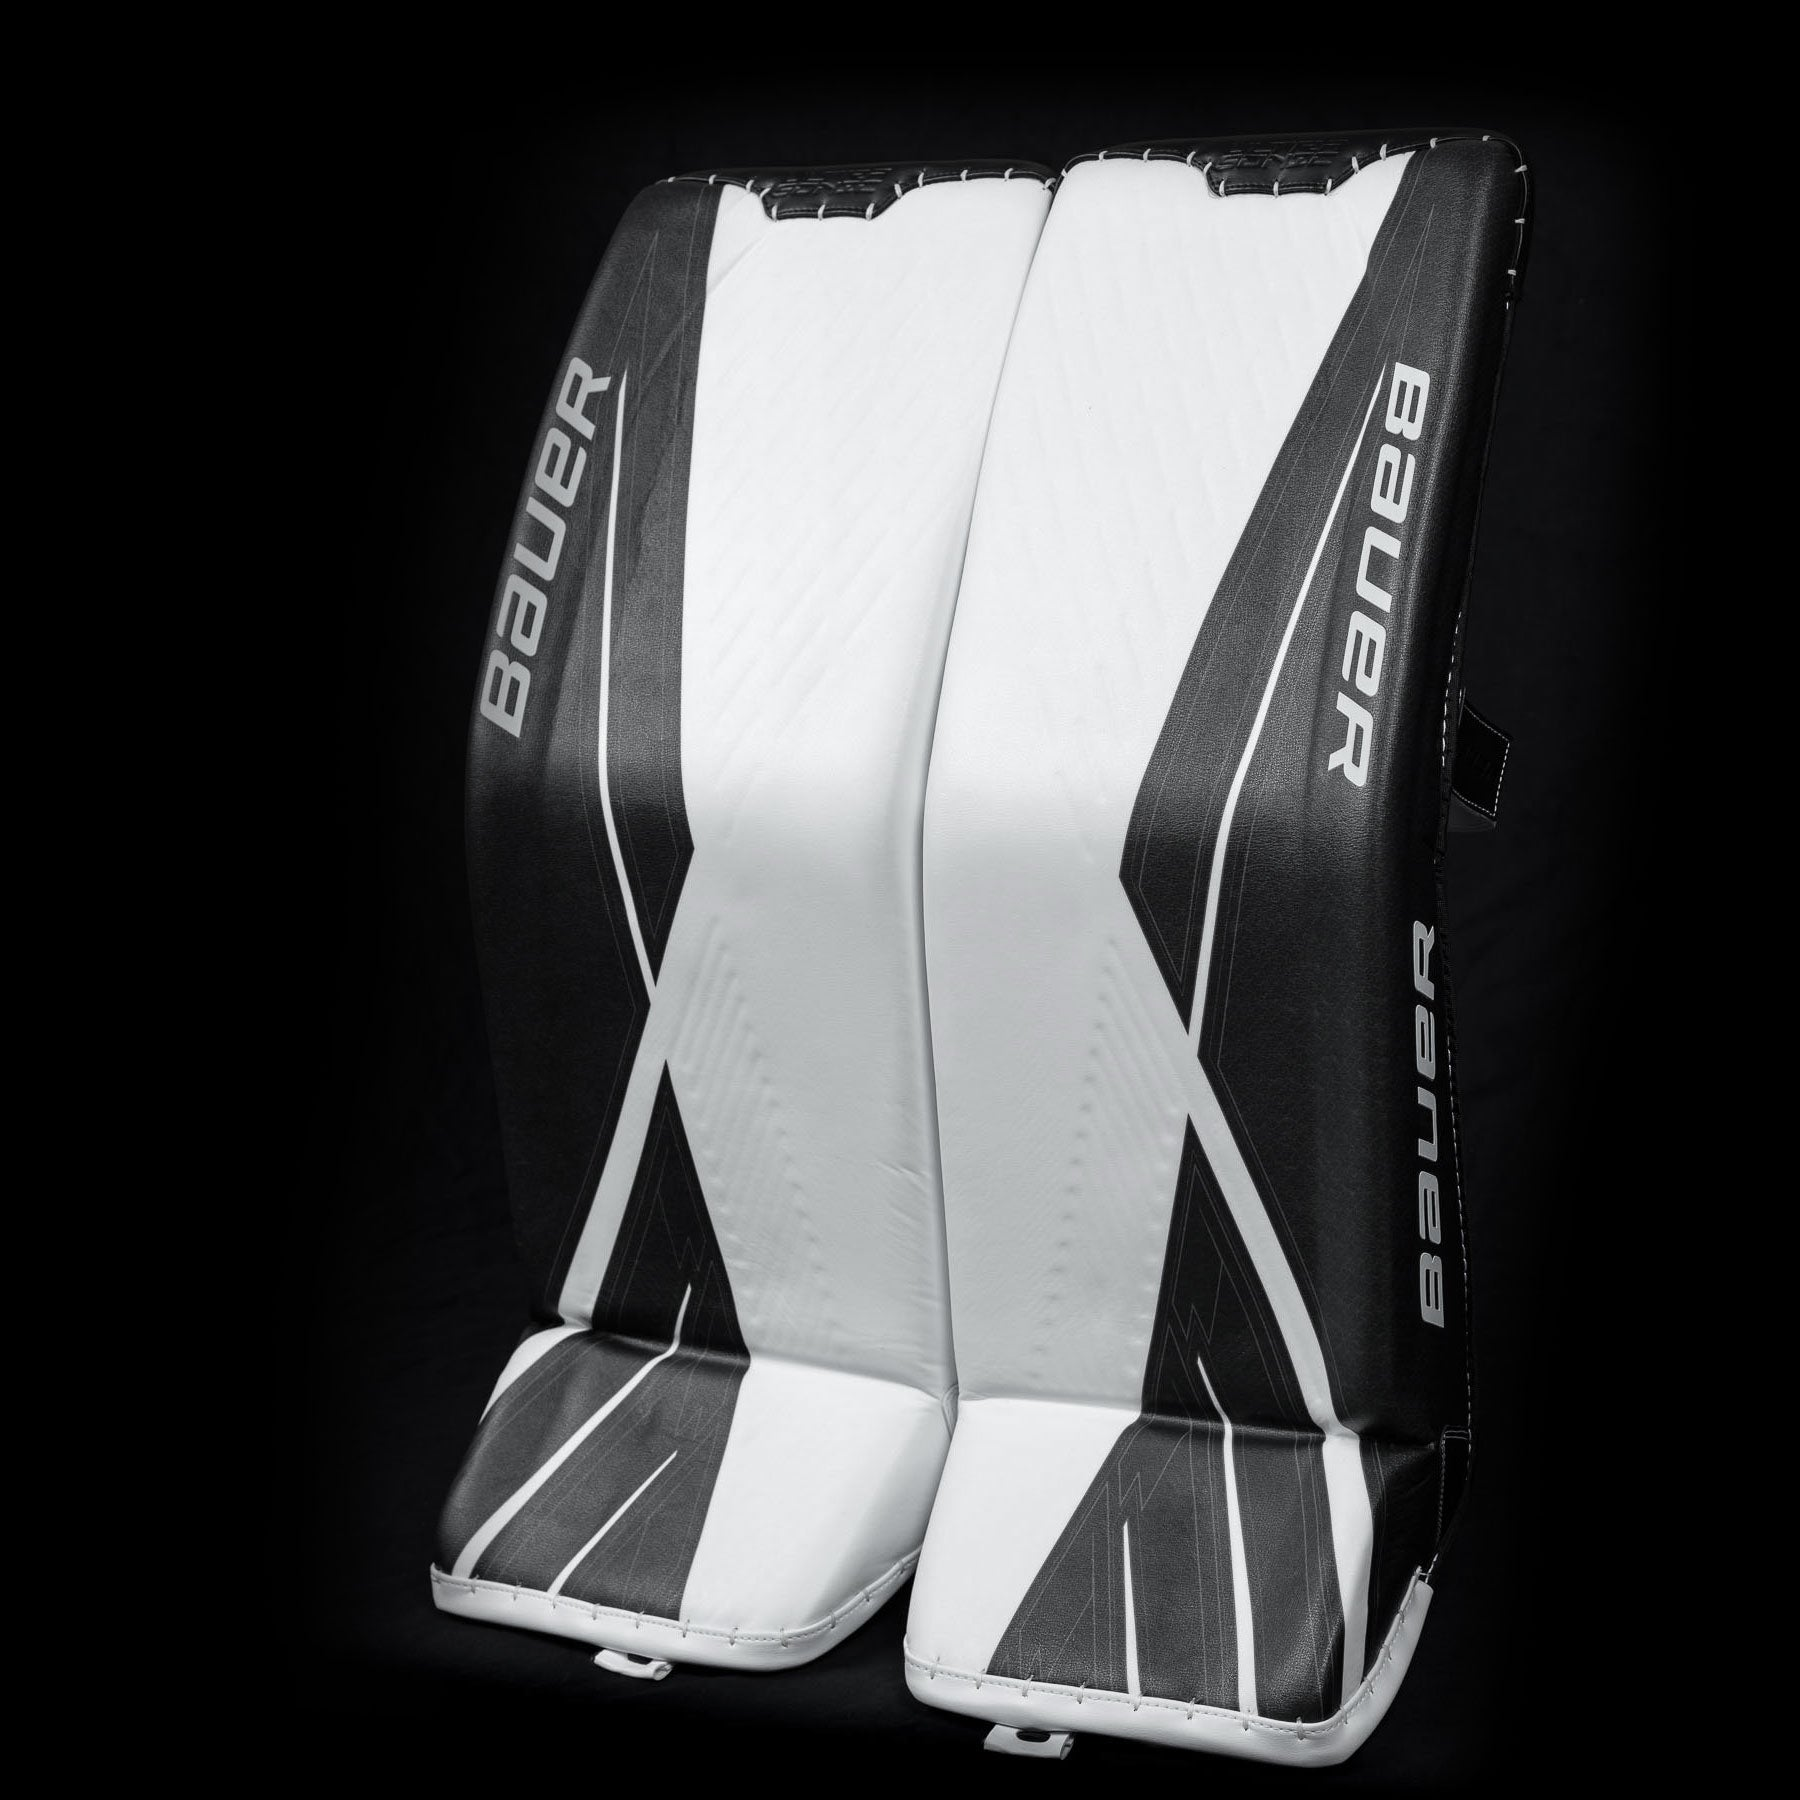 Bauer Ultrasonic Leg Pad First Look Review